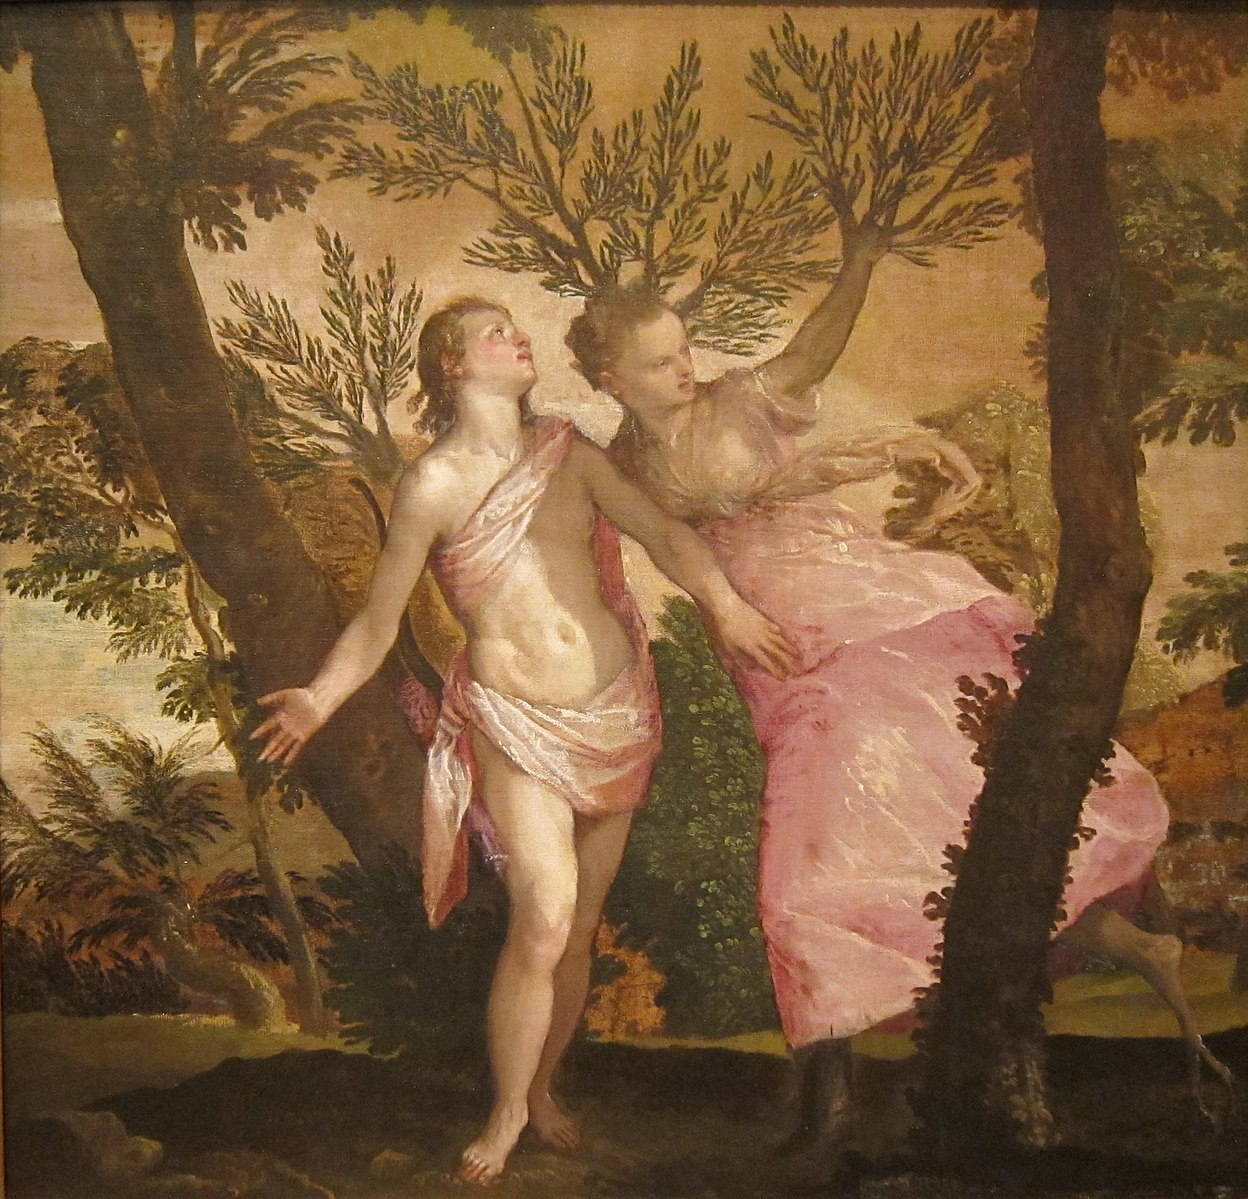 1248px-Apollo_and_Daphne_by_Veronese%2C_San_Diego_Museum_of_Art.JPG